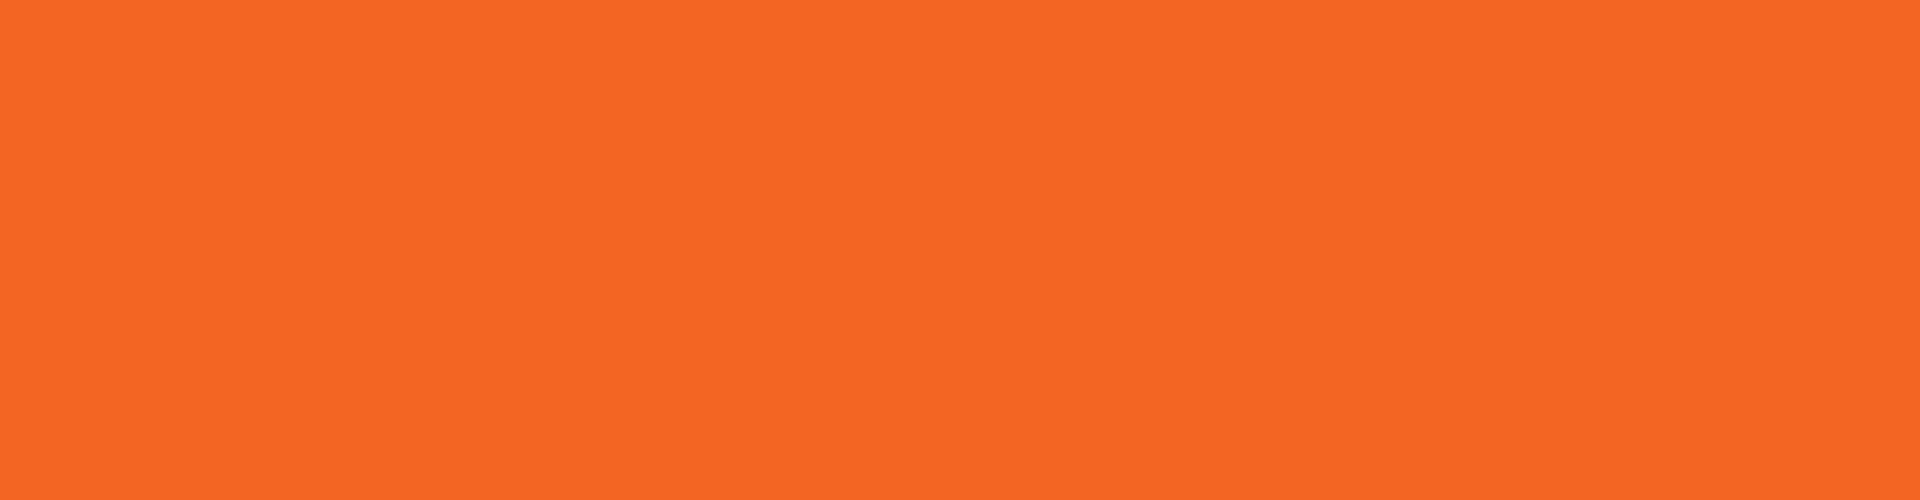 s_book_bg_orange